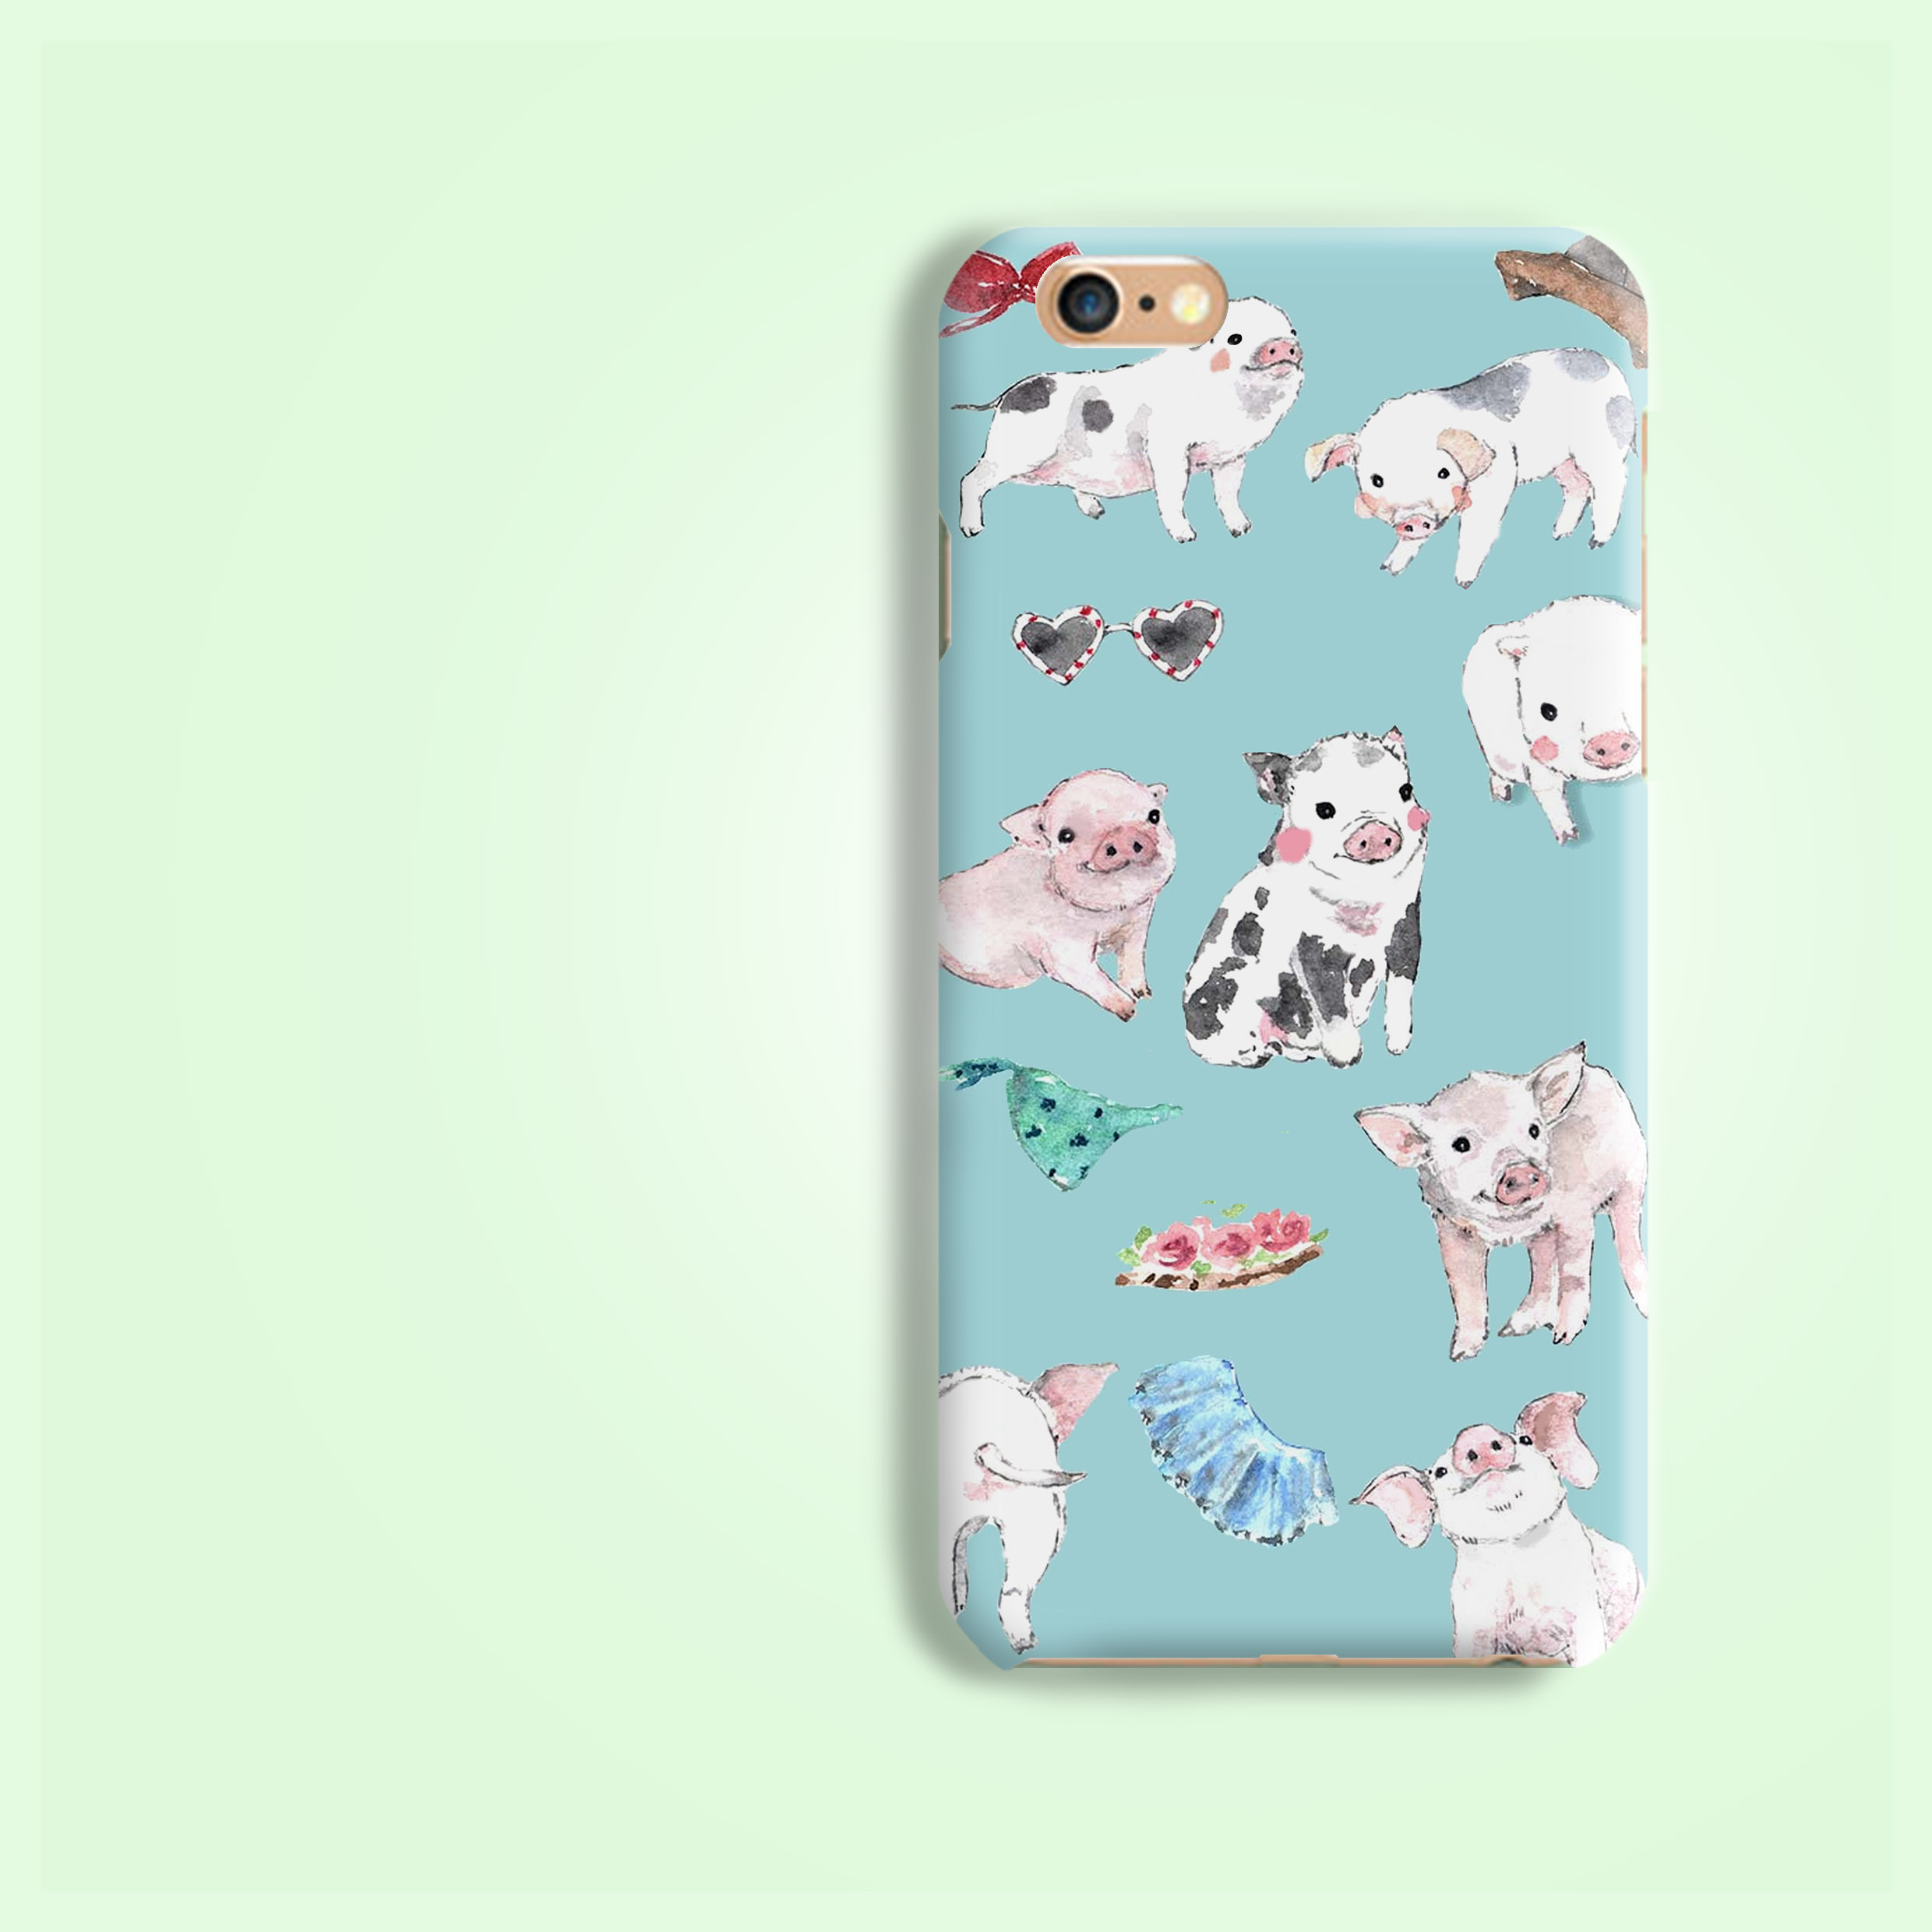 low priced c6a60 1551f Farm piggy pig all over pattern rigid hard phone case for iPhone X 8 7 6S  SE Plus Galaxy S9 S8 Plus S7 edge Note 8 Note 5 A8 2018 A7 2017 A5